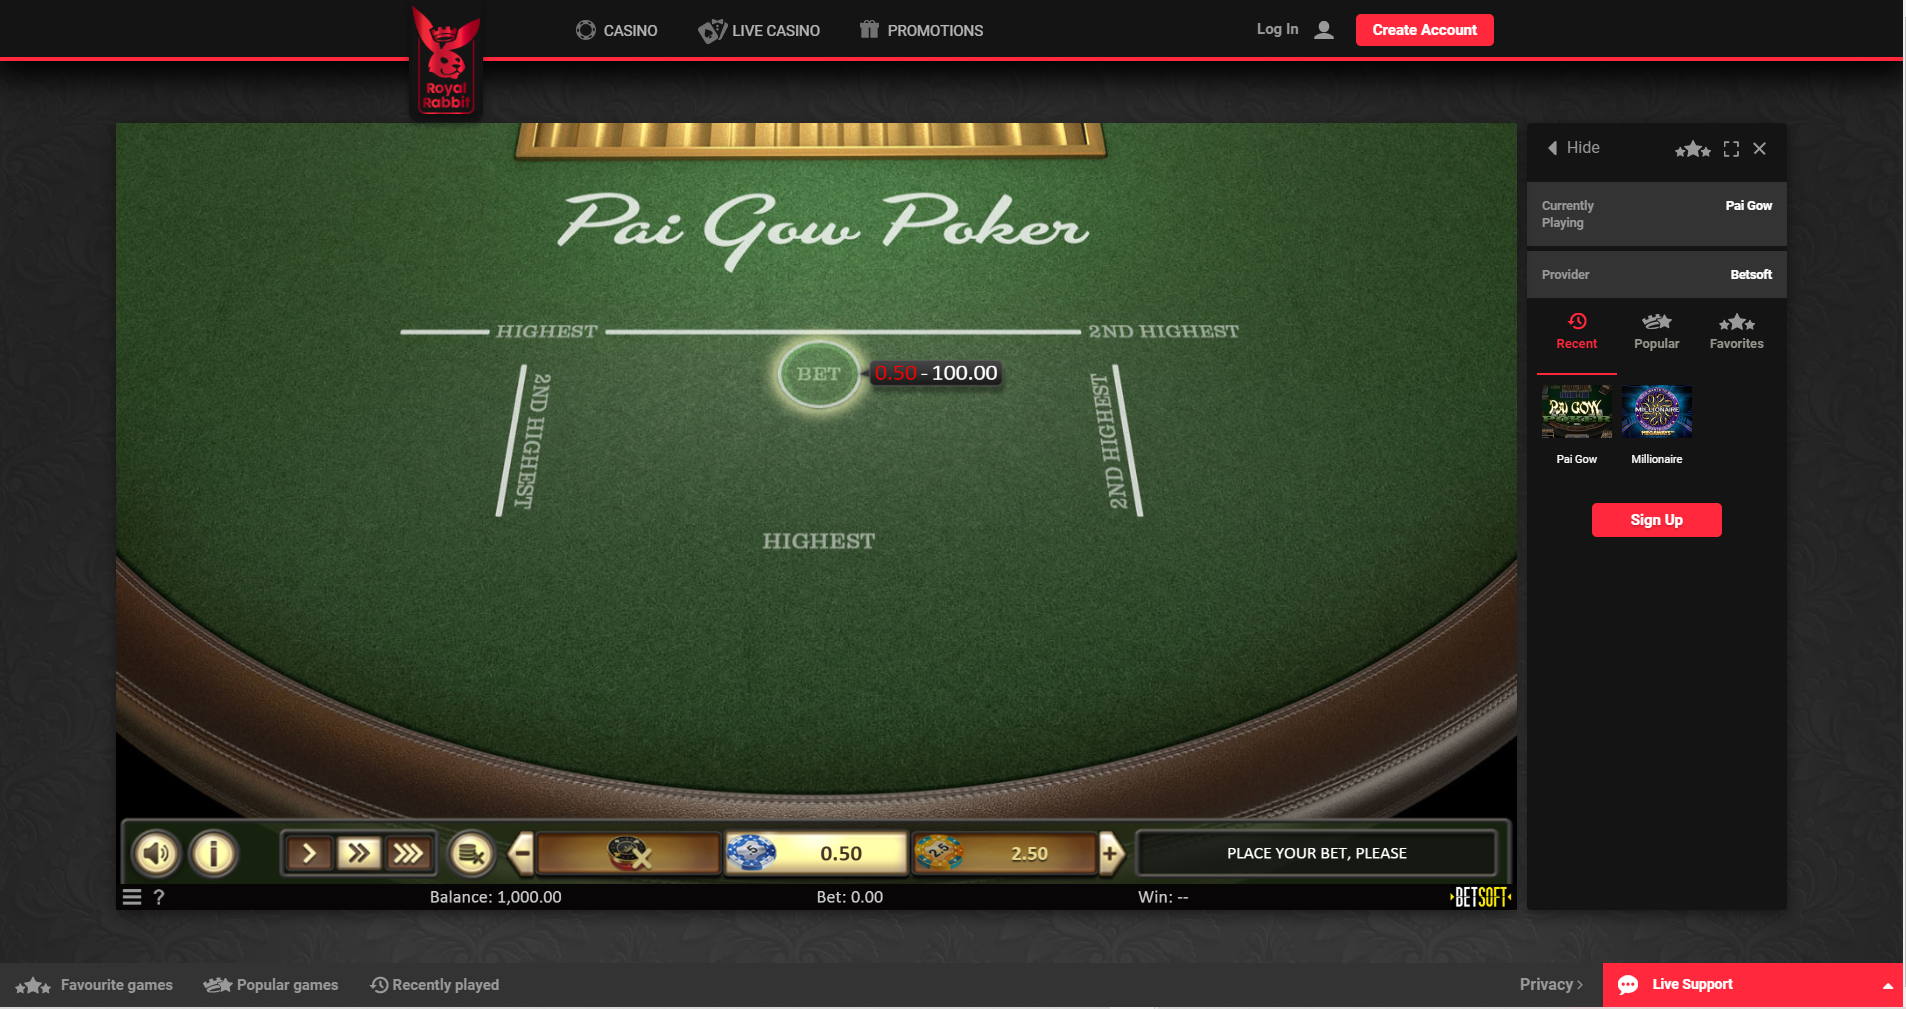 pai gow poker online betsoft royal rabbit casino